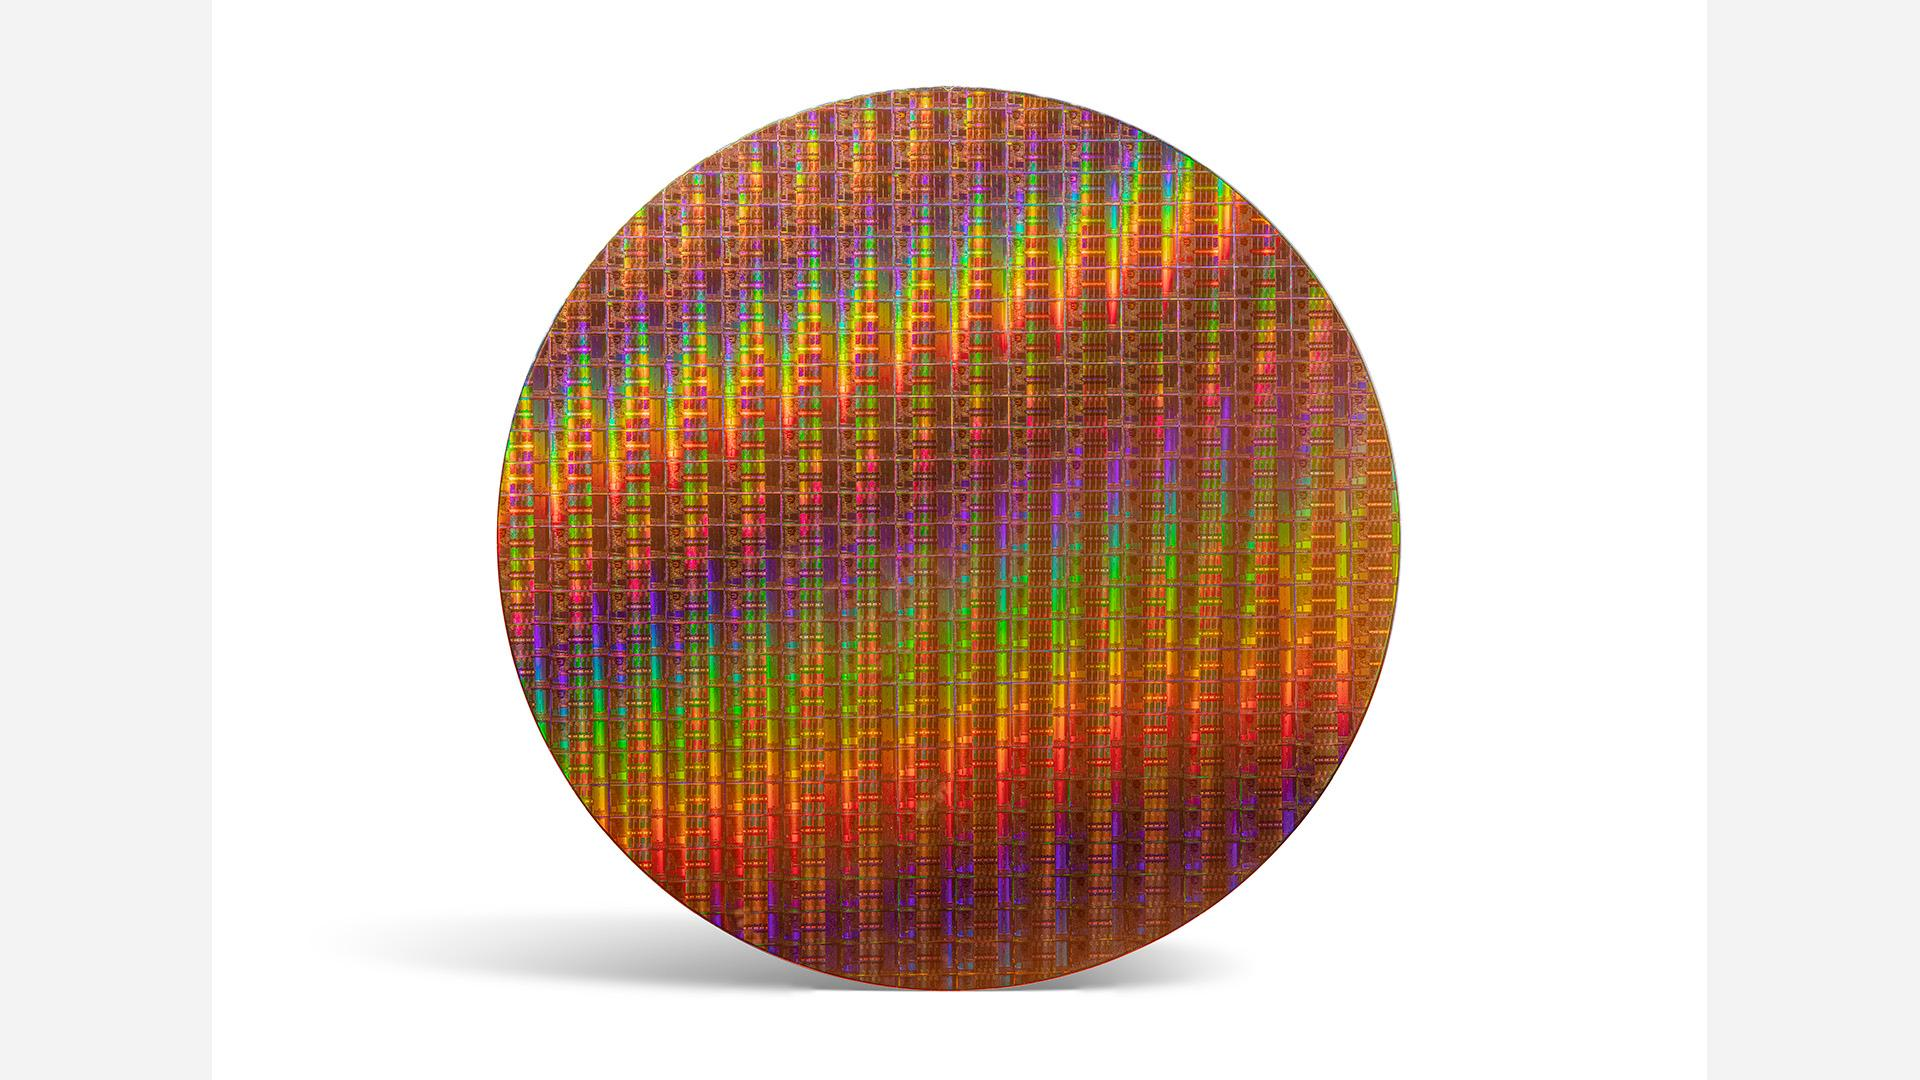 wafer-front-high-res.jpg.rendition.intel.web.1920.1080